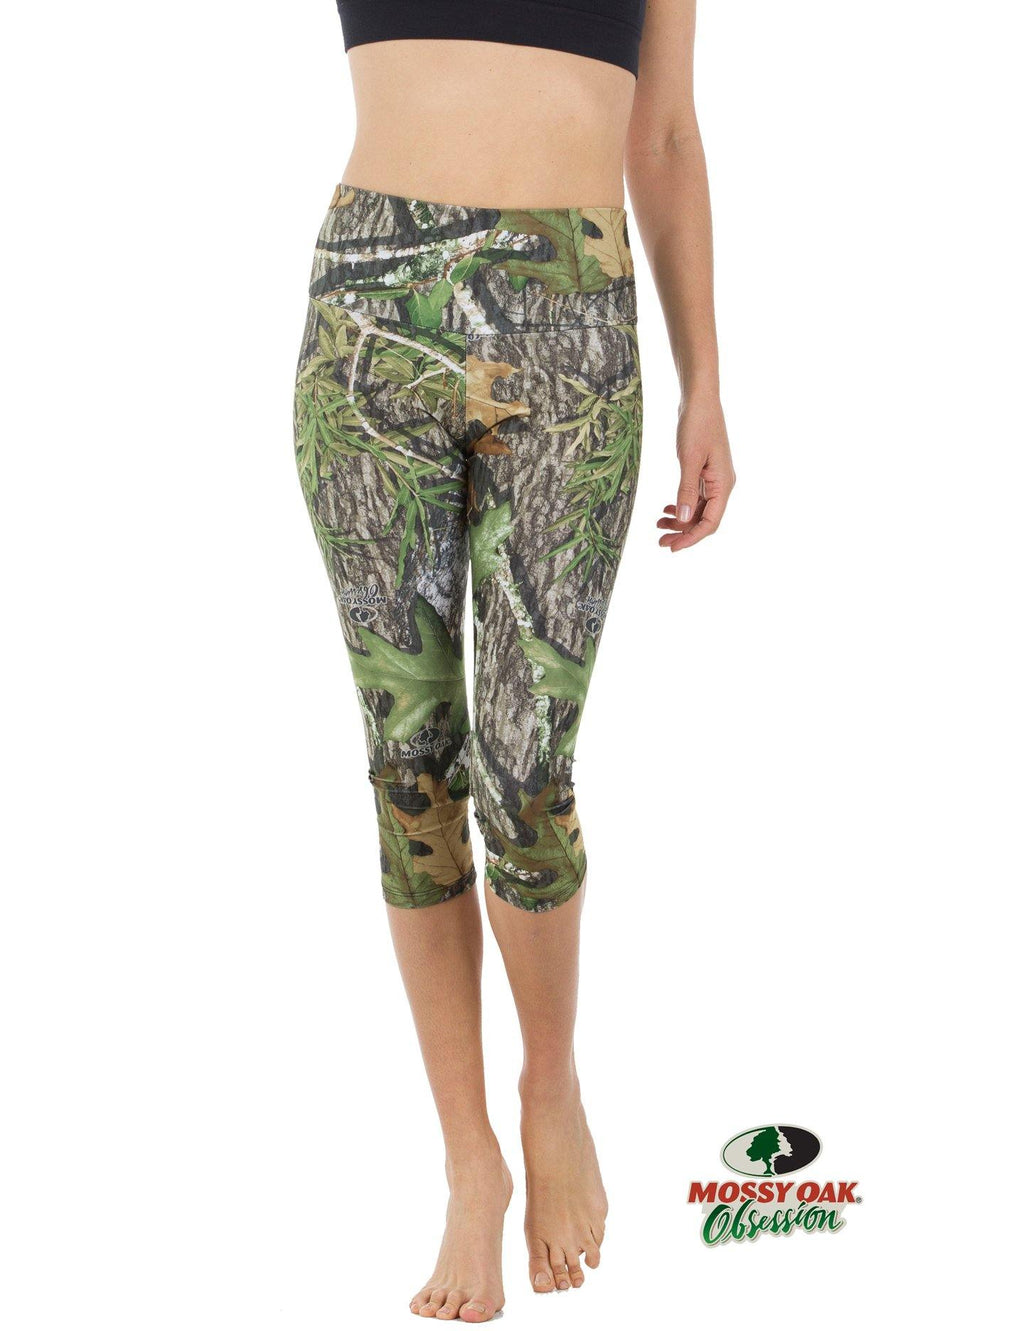 Apsara Leggings High Waist Capri, Mossy Oak Obsession